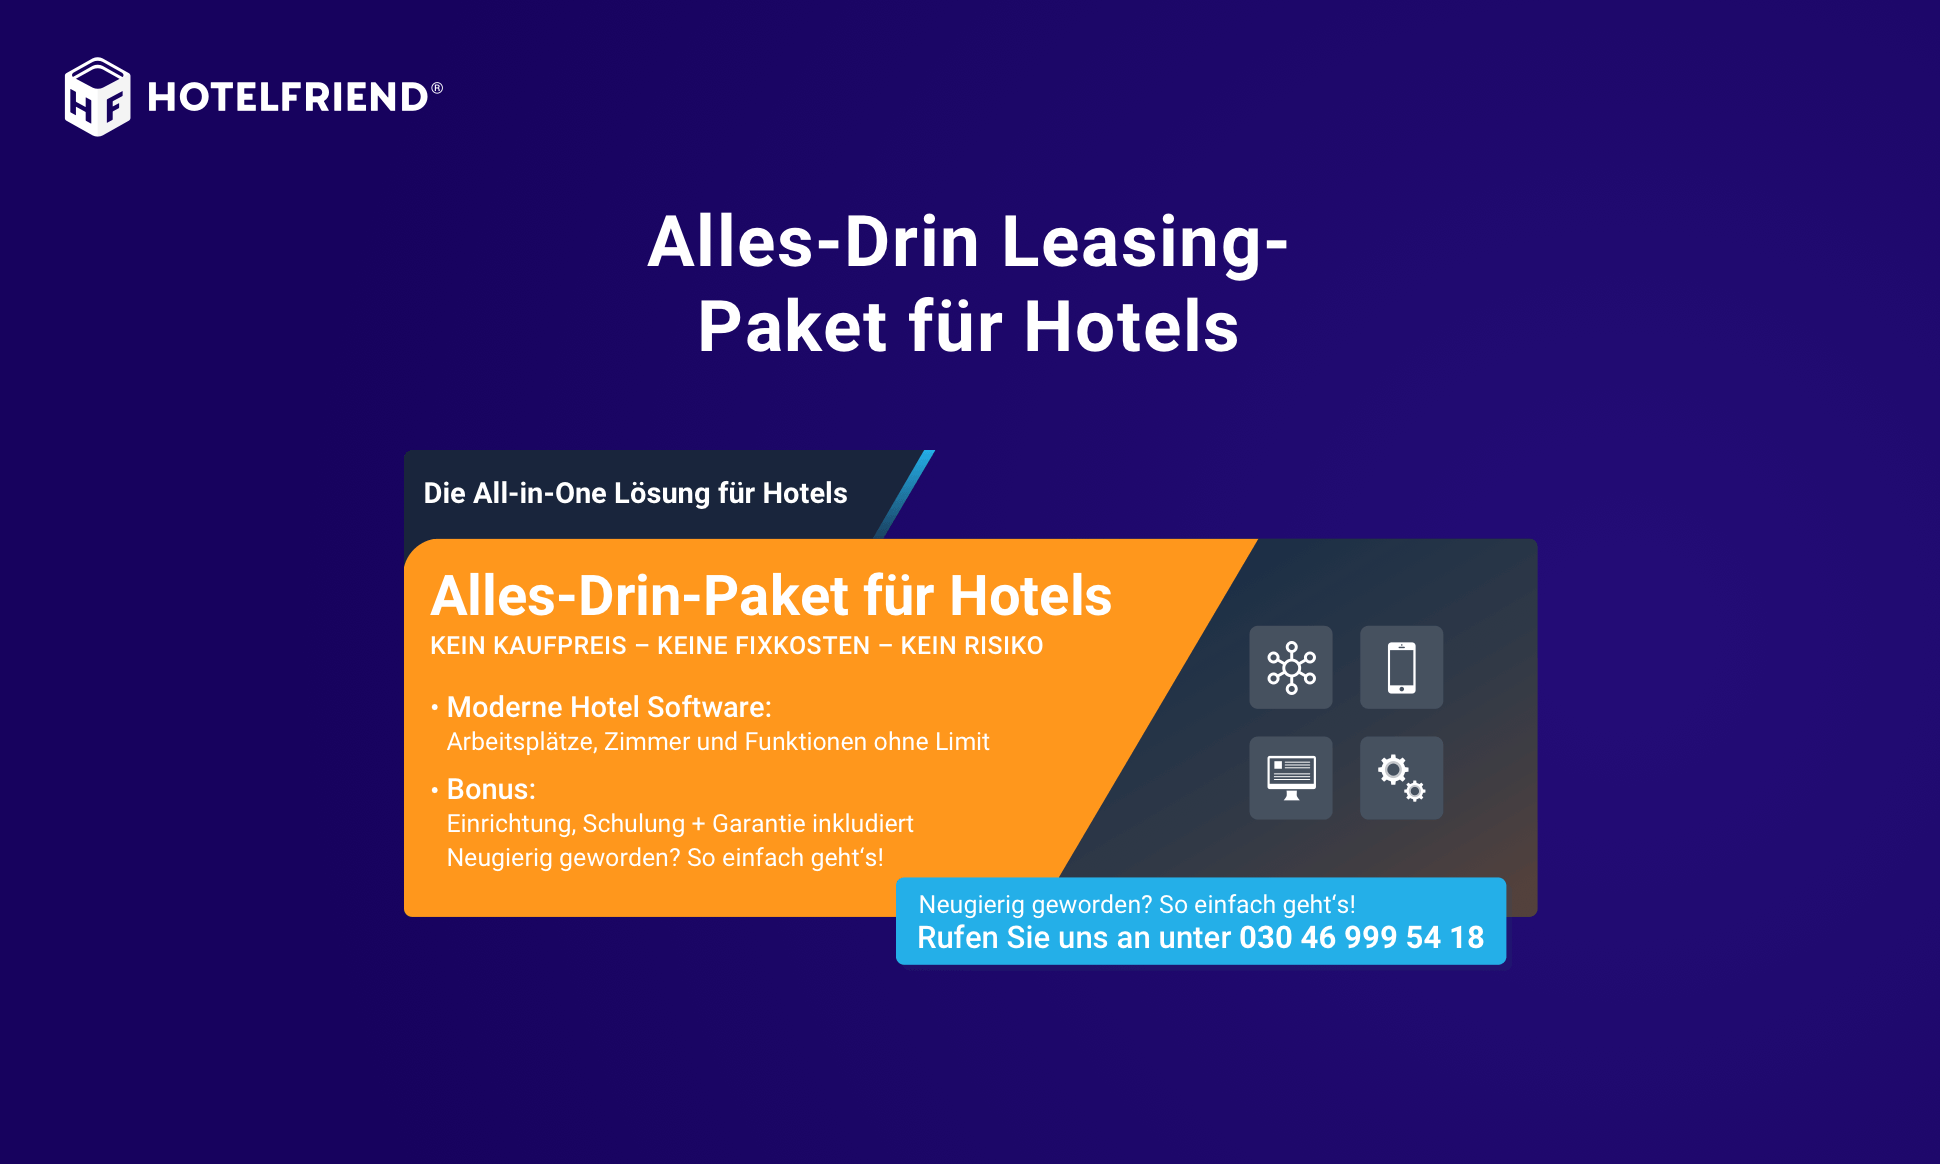 All-inclusive leasing package for hotels